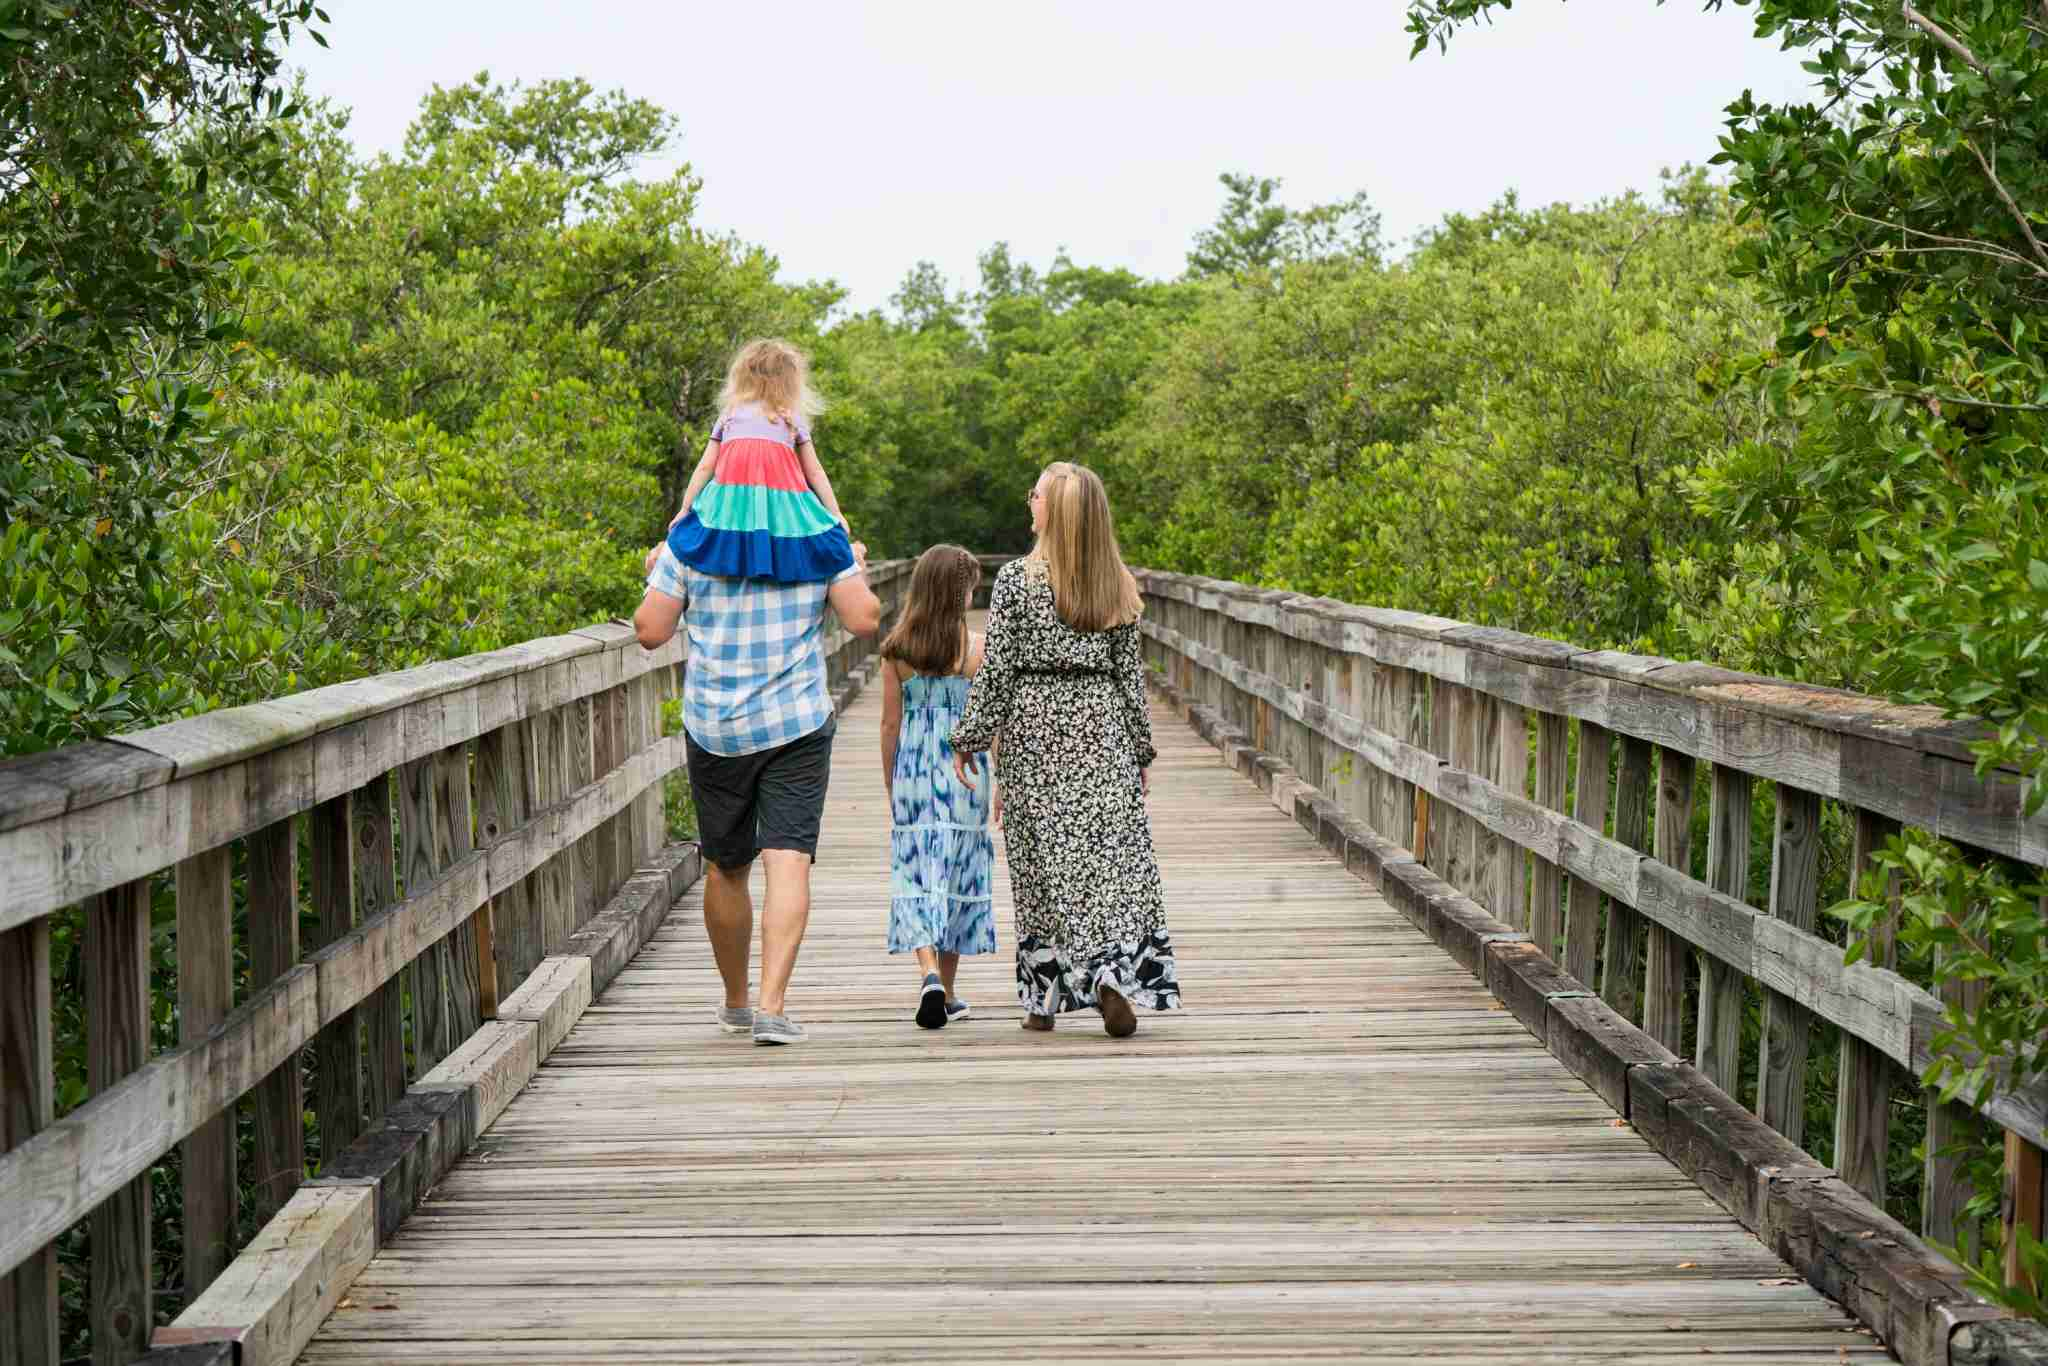 Fort Myers, Florida, is a wonderful place for families. (Photo by Summer Hull / The Points Guy)